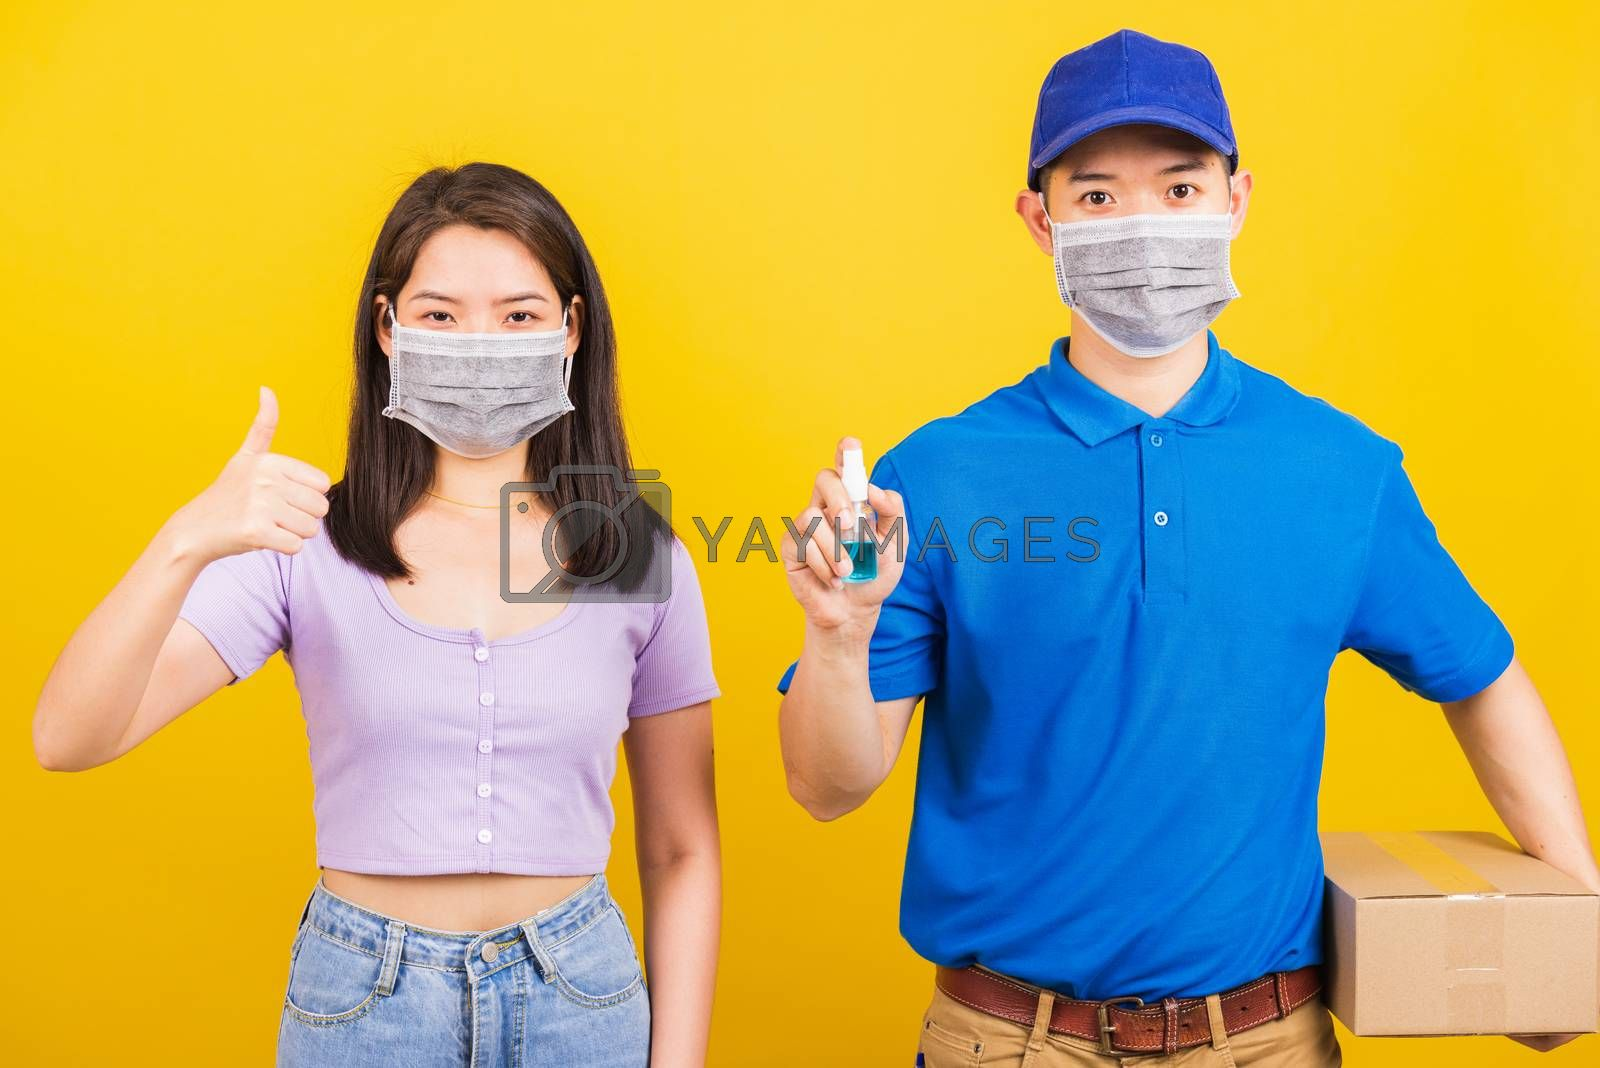 Asian young handsome delivery man hold alcohol disinfectant spray and woman show finger thumb up and both wearing face mask protective  virus, isolated yellow background, outbreak coronavirus COVID-19